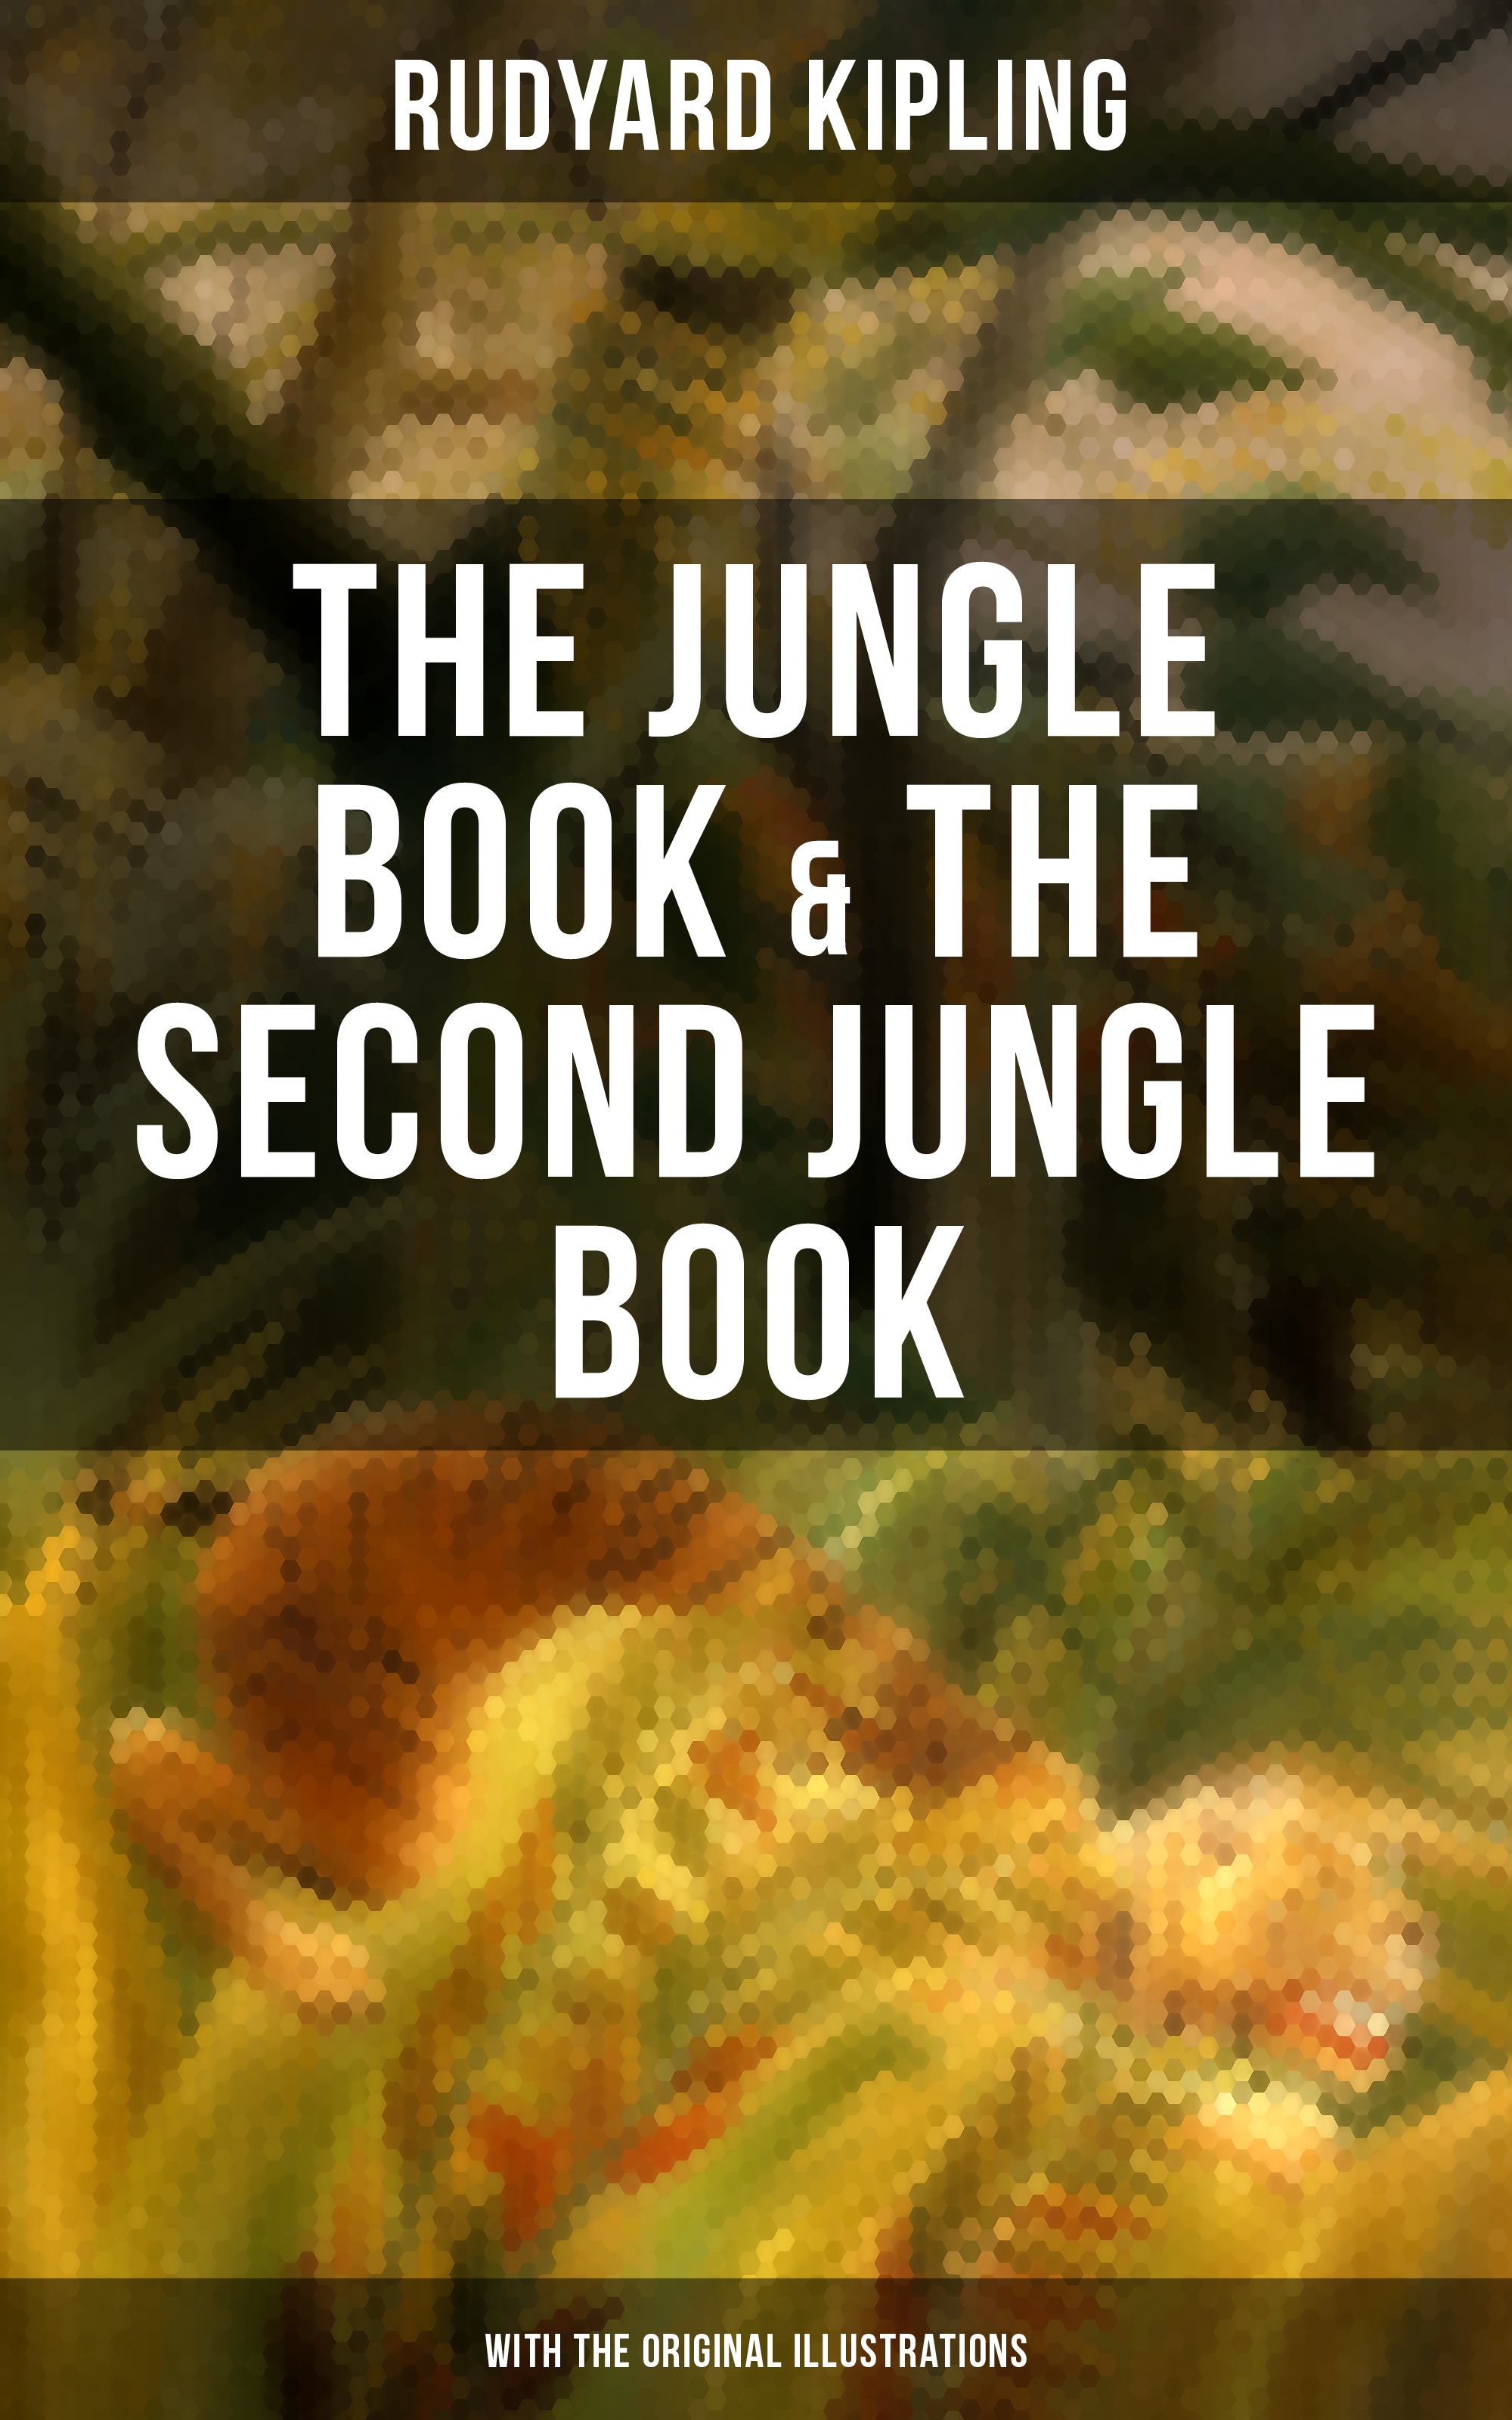 Rudyard Kipling THE JUNGLE BOOK & THE SECOND JUNGLE BOOK (With the Original Illustrations)